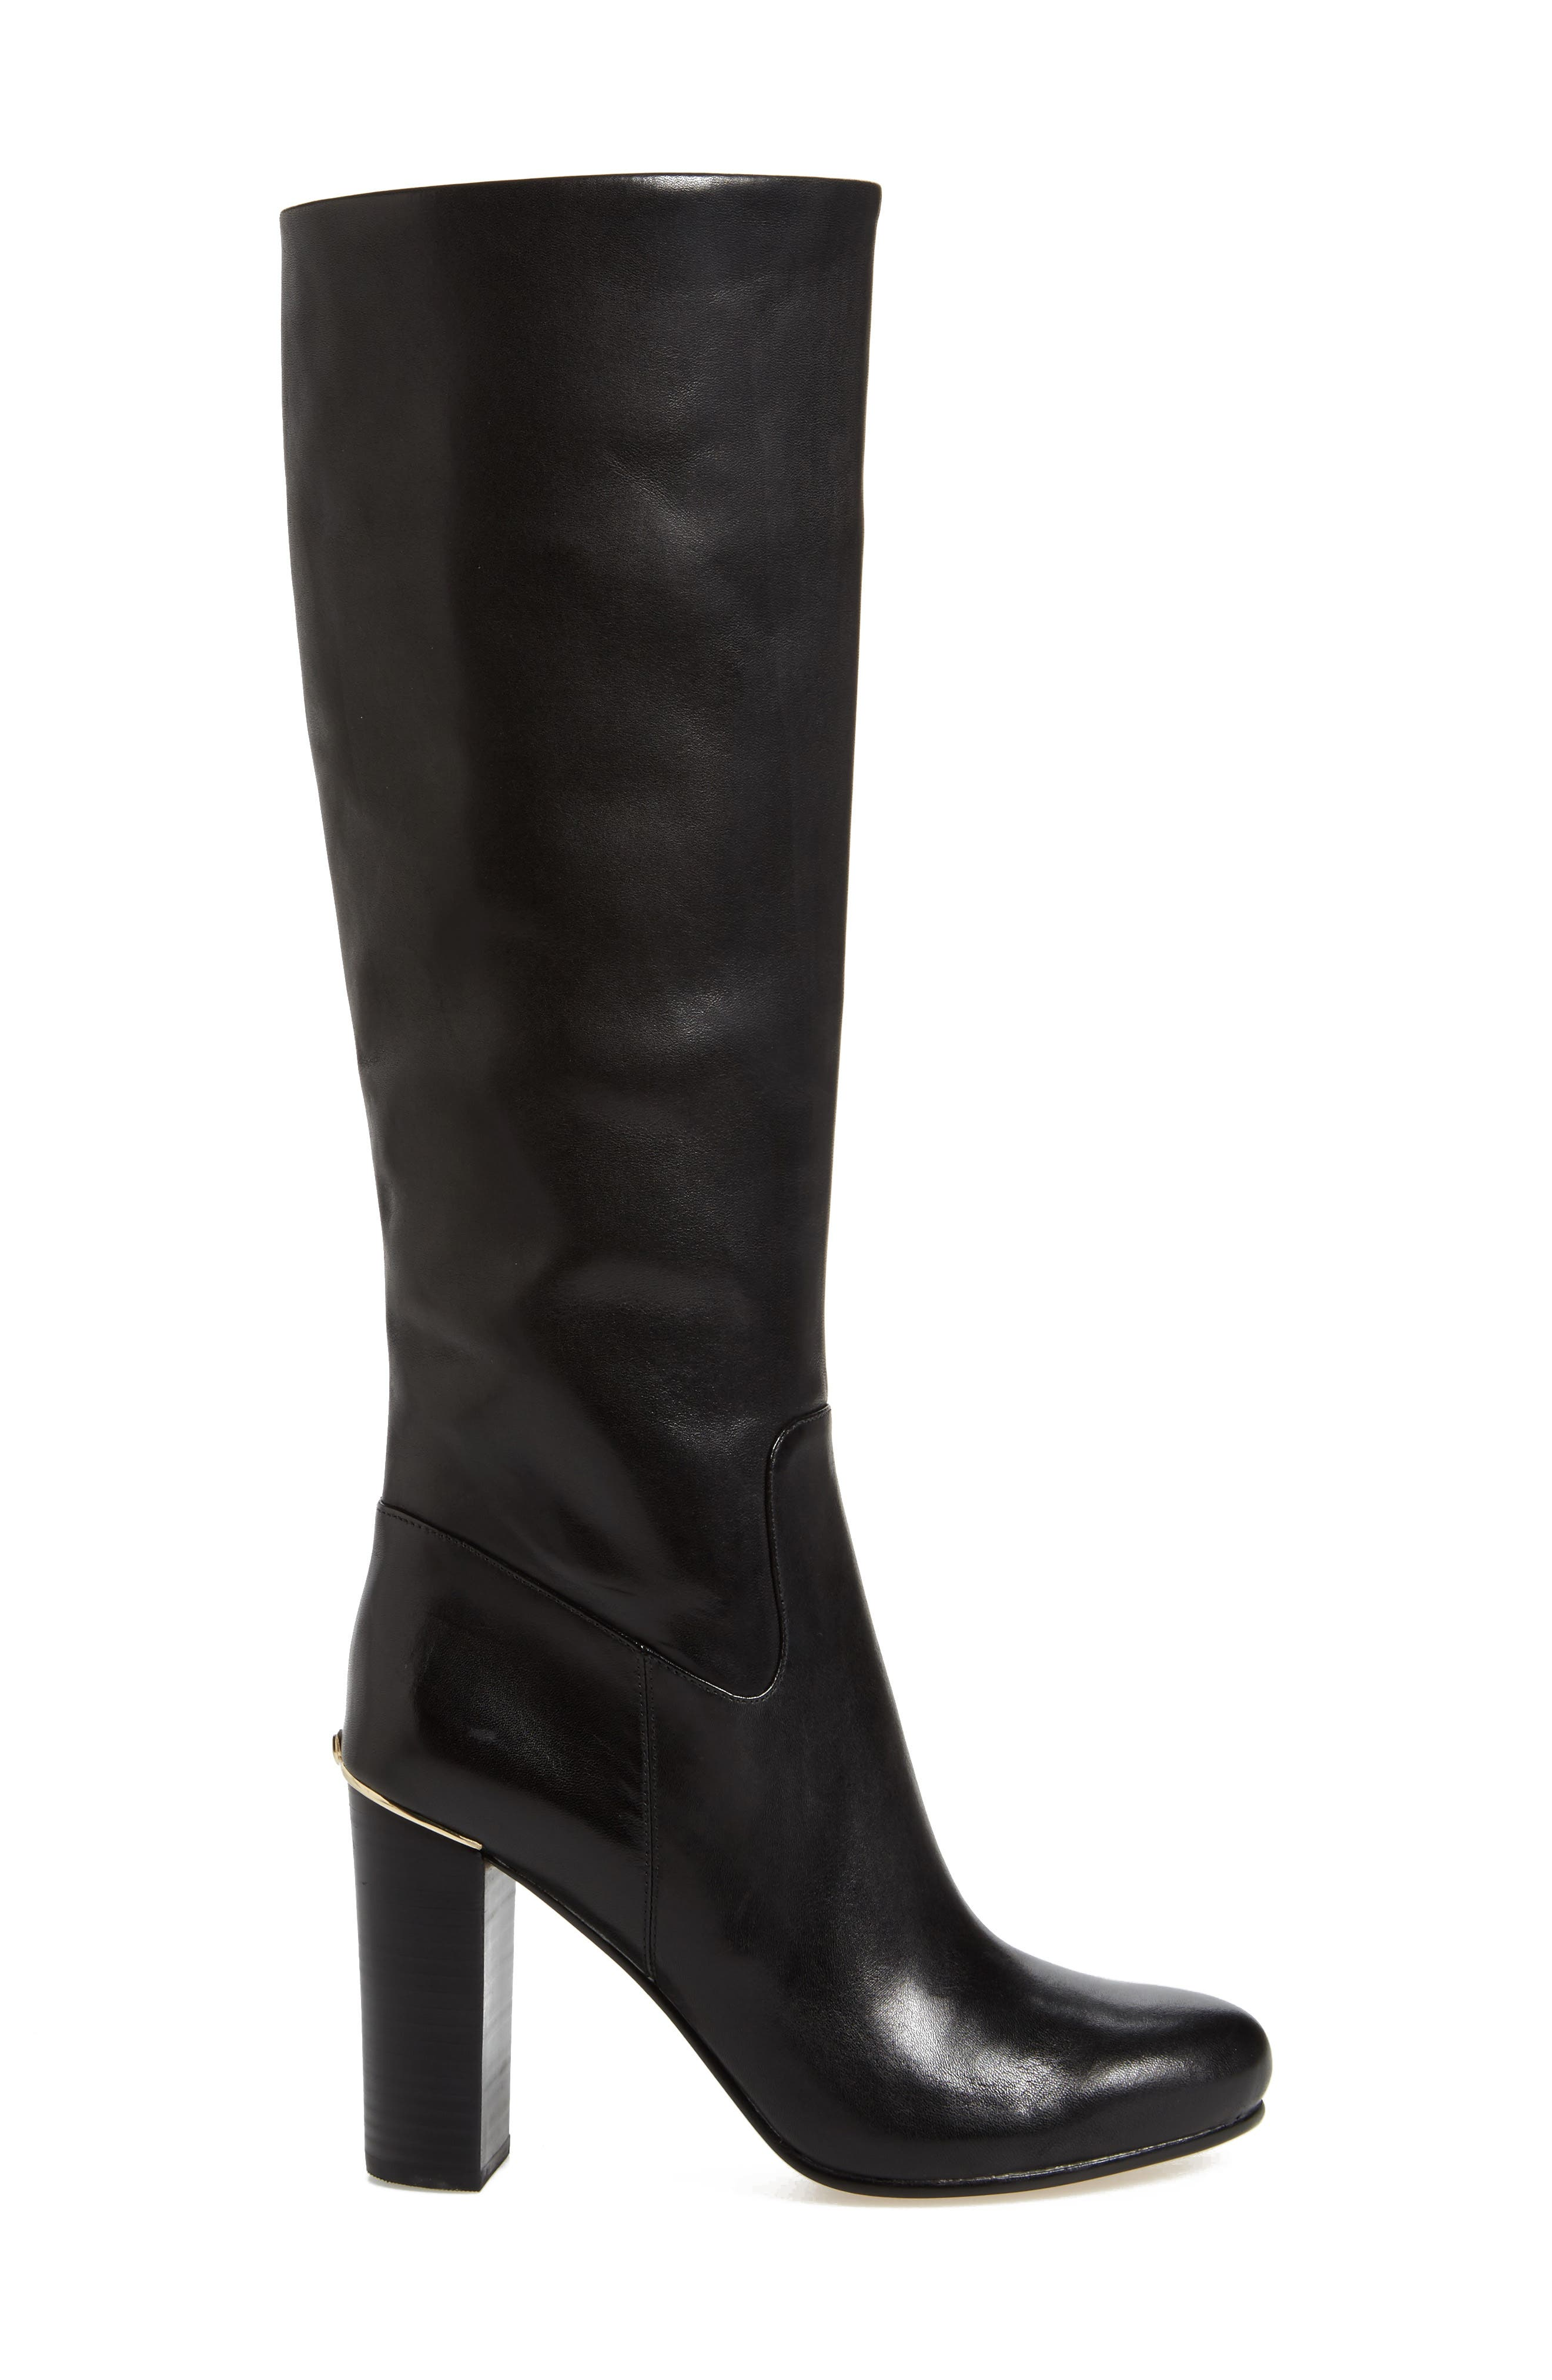 Janice Knee High Boot,                             Alternate thumbnail 3, color,                             Black Calf Leather